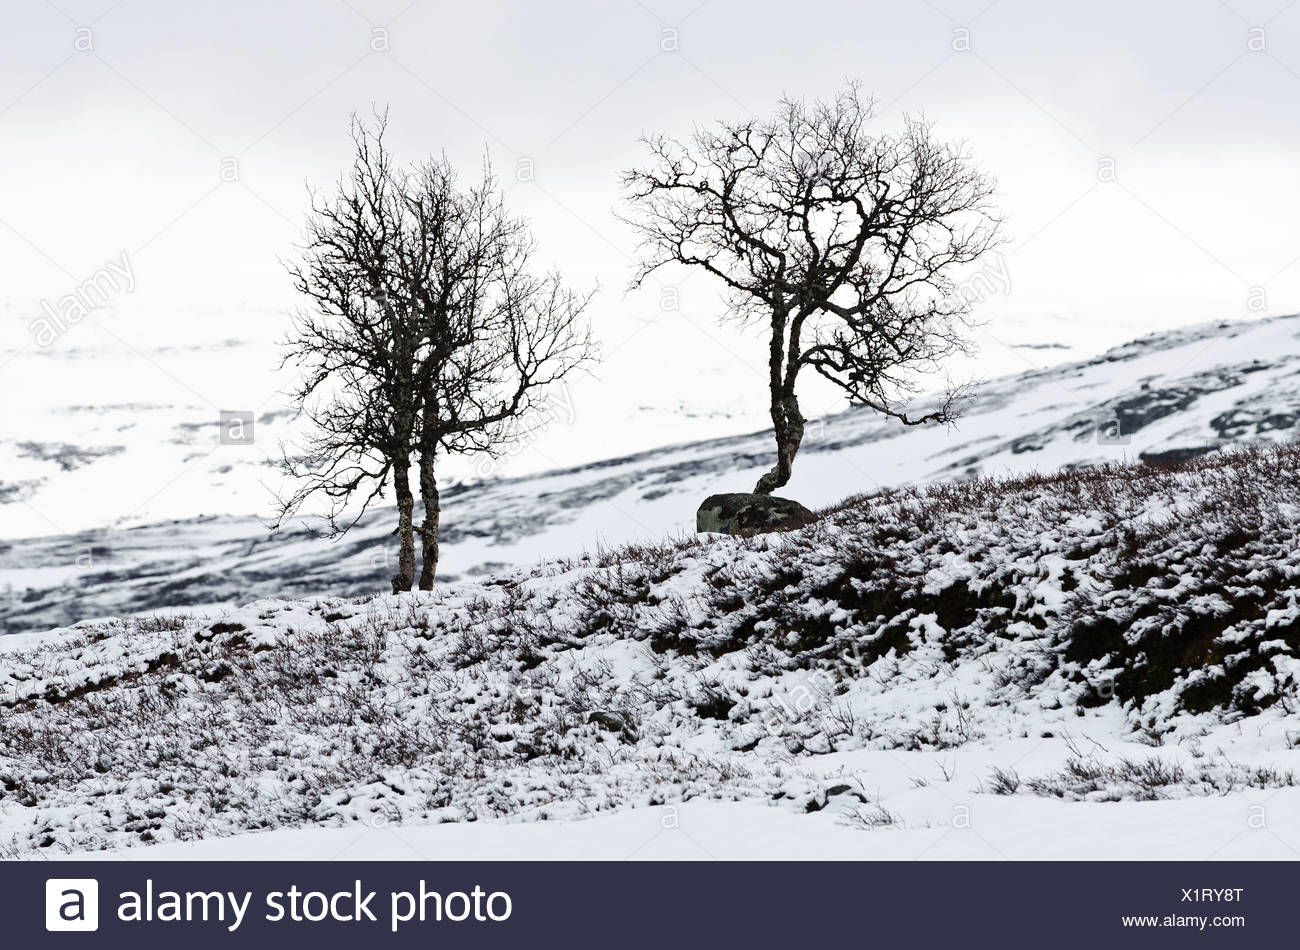 Bare trees with snow on the Hardangervidda mountain plateau, Norway, Scandinavia, Northern Europe - Stock Image